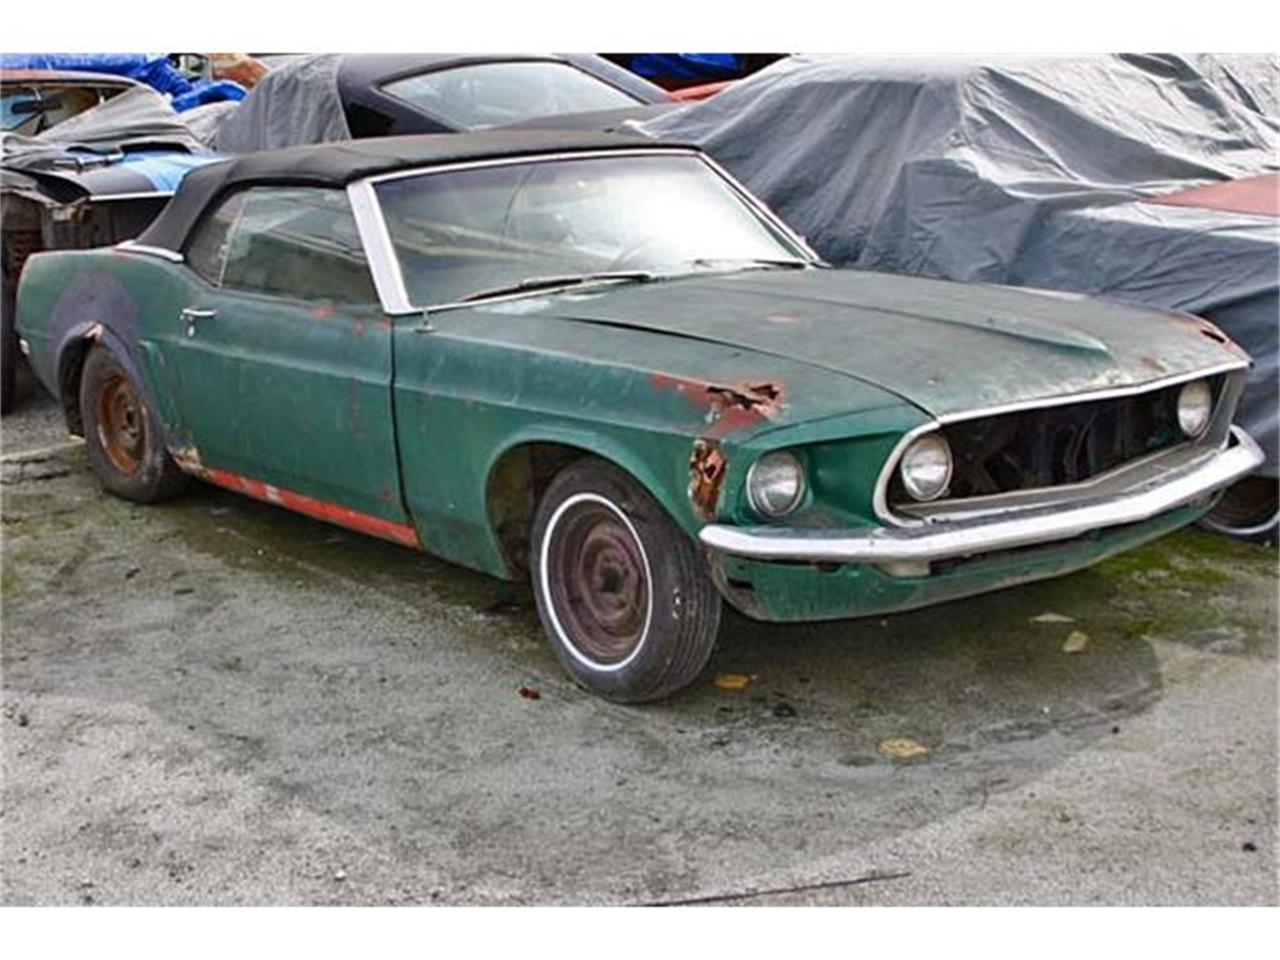 Large picture of classic 1969 mustang located in marina california offered by mustang beginnings awbj